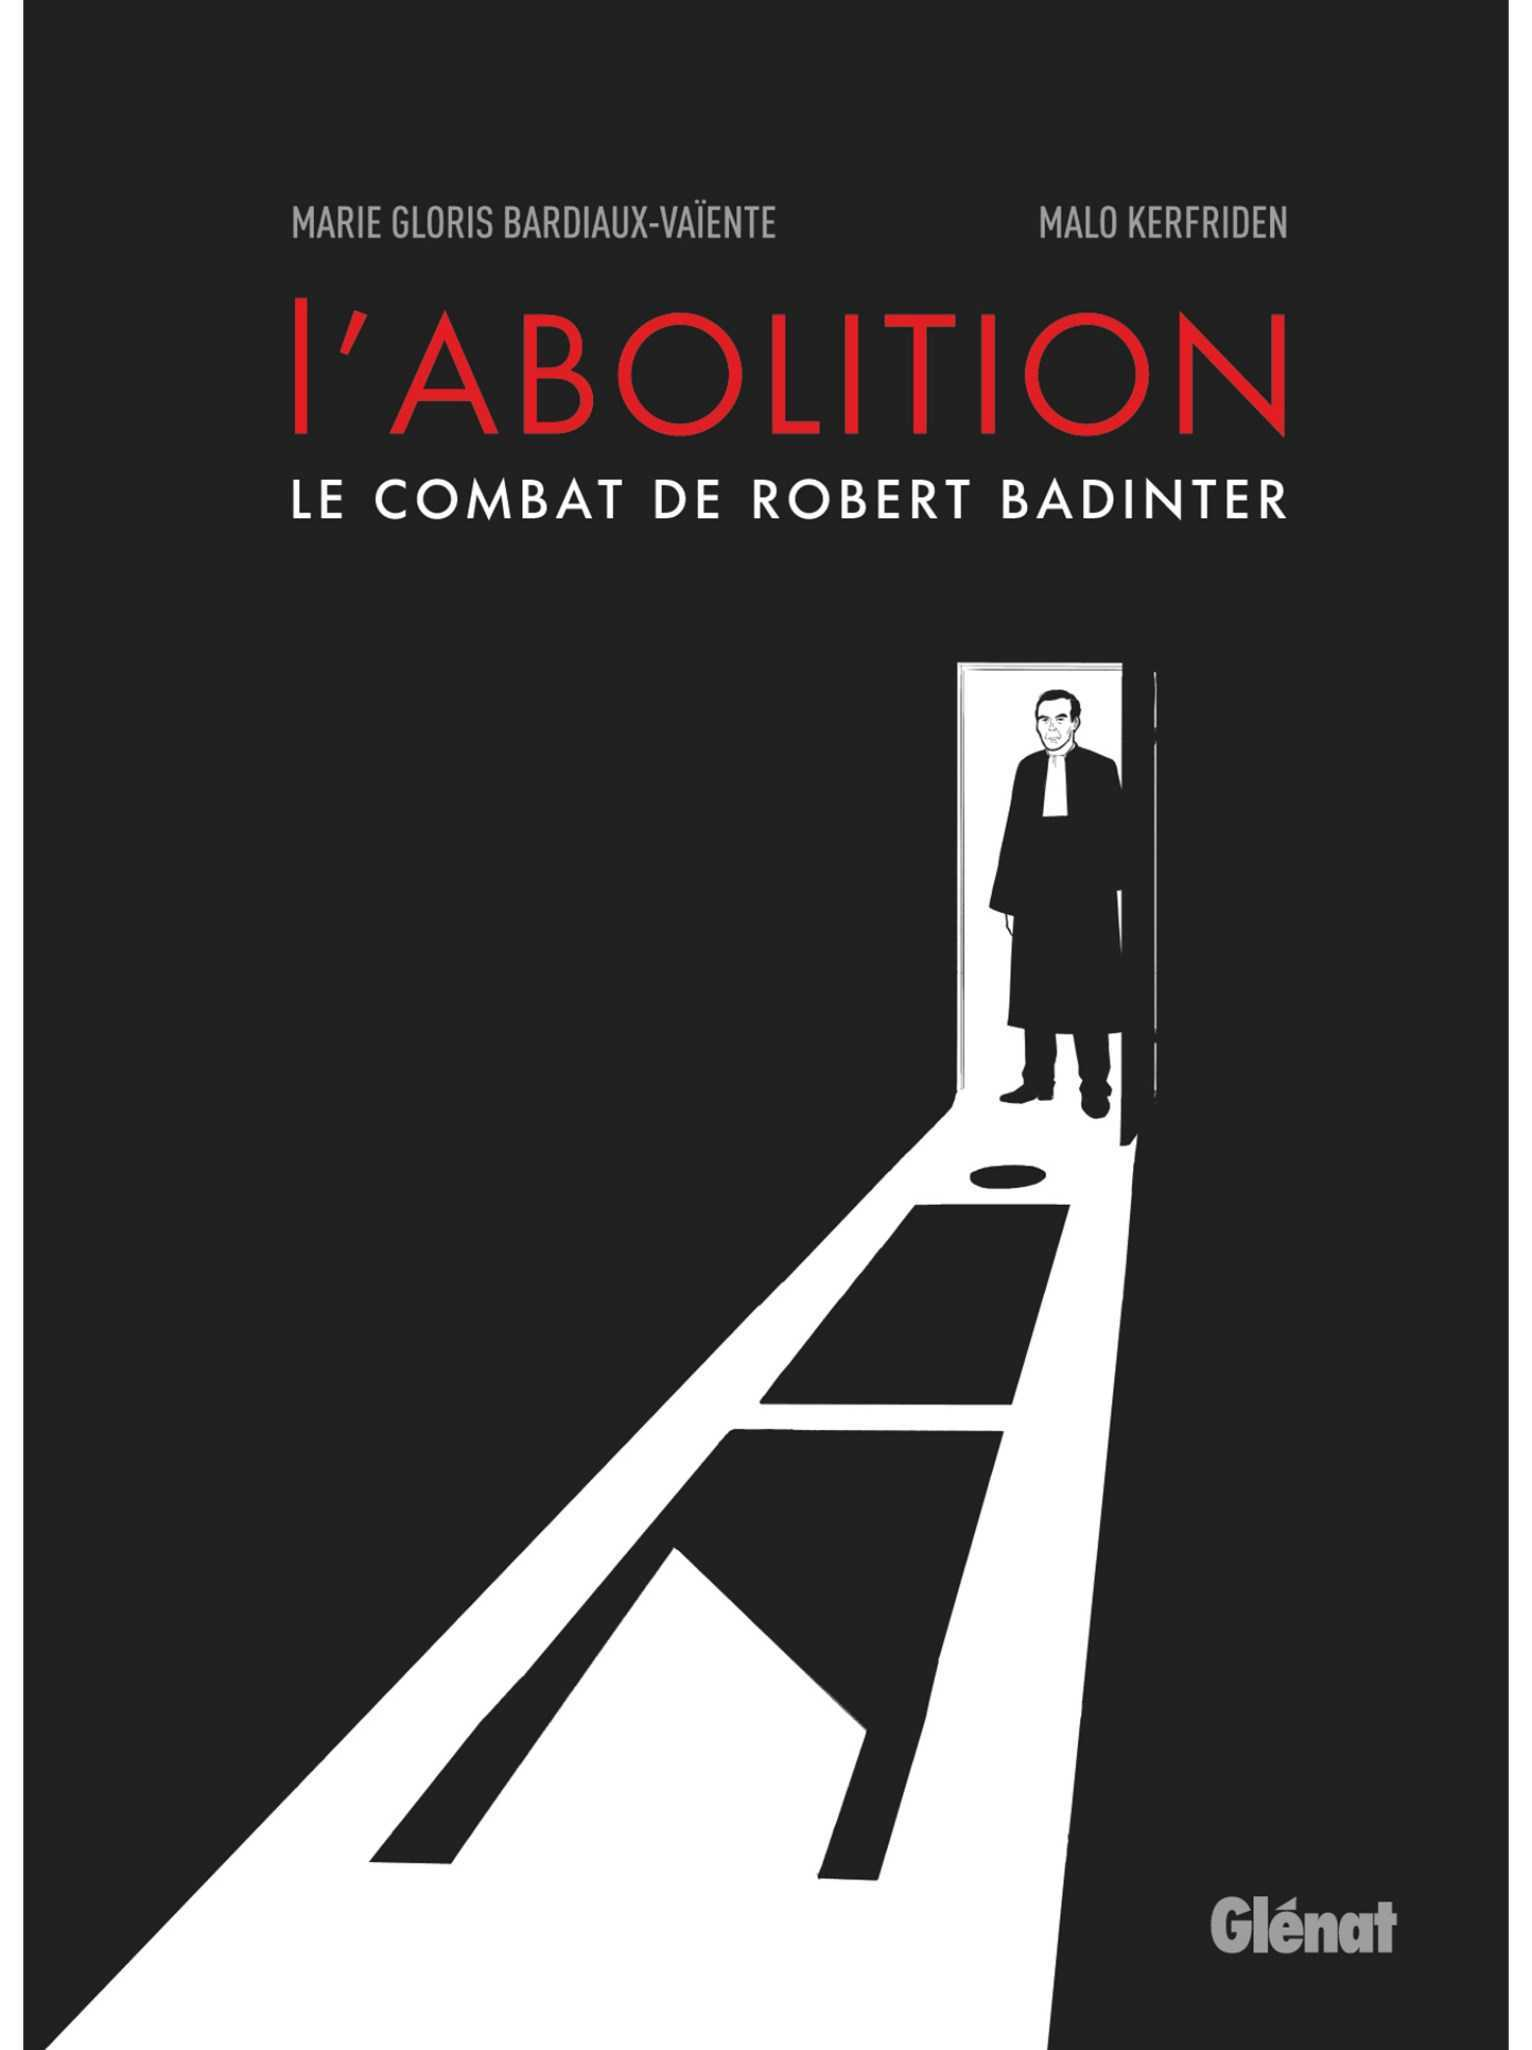 L'Abolition, Robert Badinter homme de foi et de courage